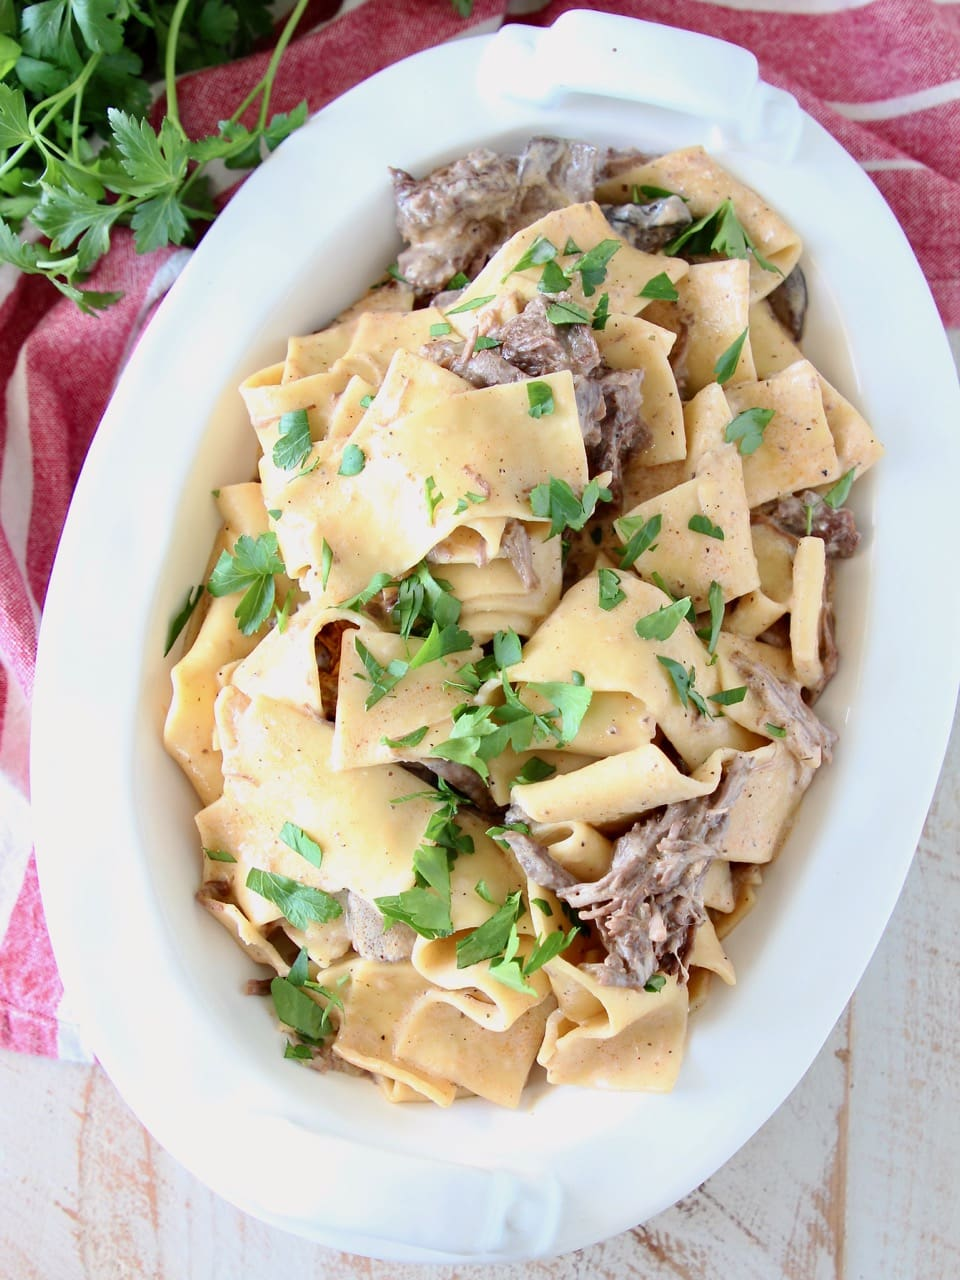 Instant pot beef stroganoff in a large white oval serving dish with wide egg noodles and shredded beef, topped with fresh parsley, sitting on a red and white striped towel